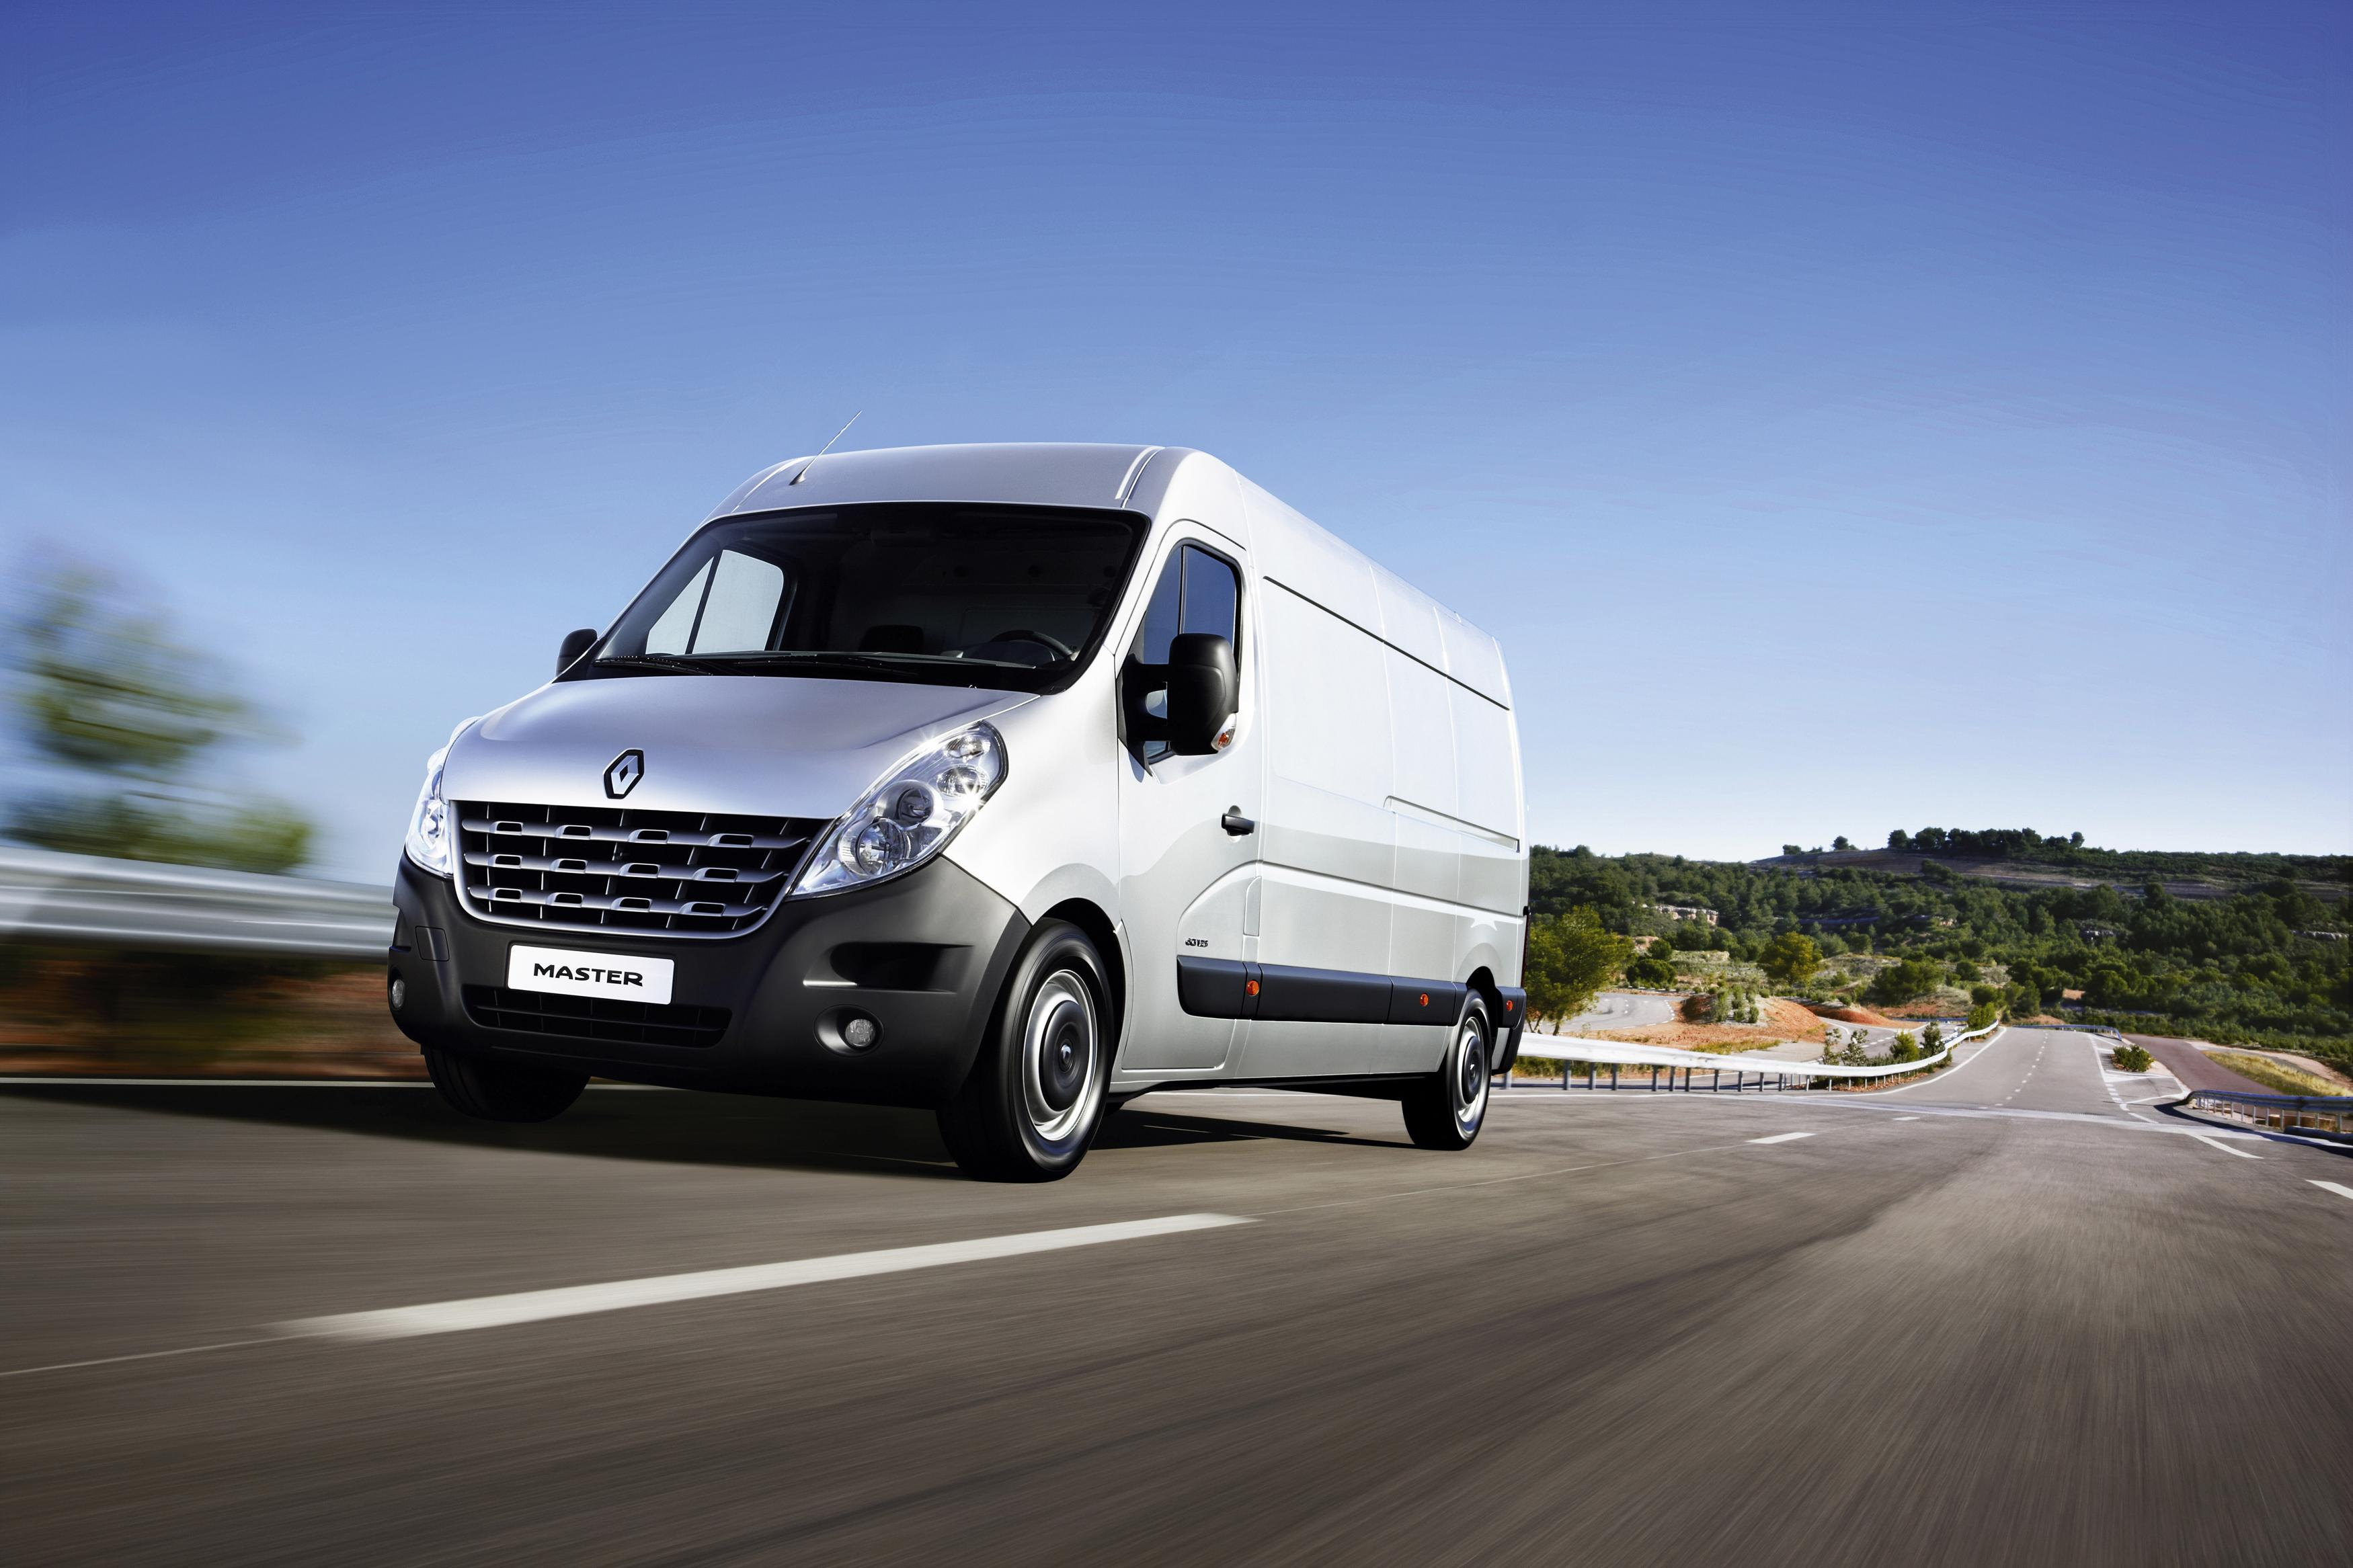 nouveau renault master 1 re impressions. Black Bedroom Furniture Sets. Home Design Ideas